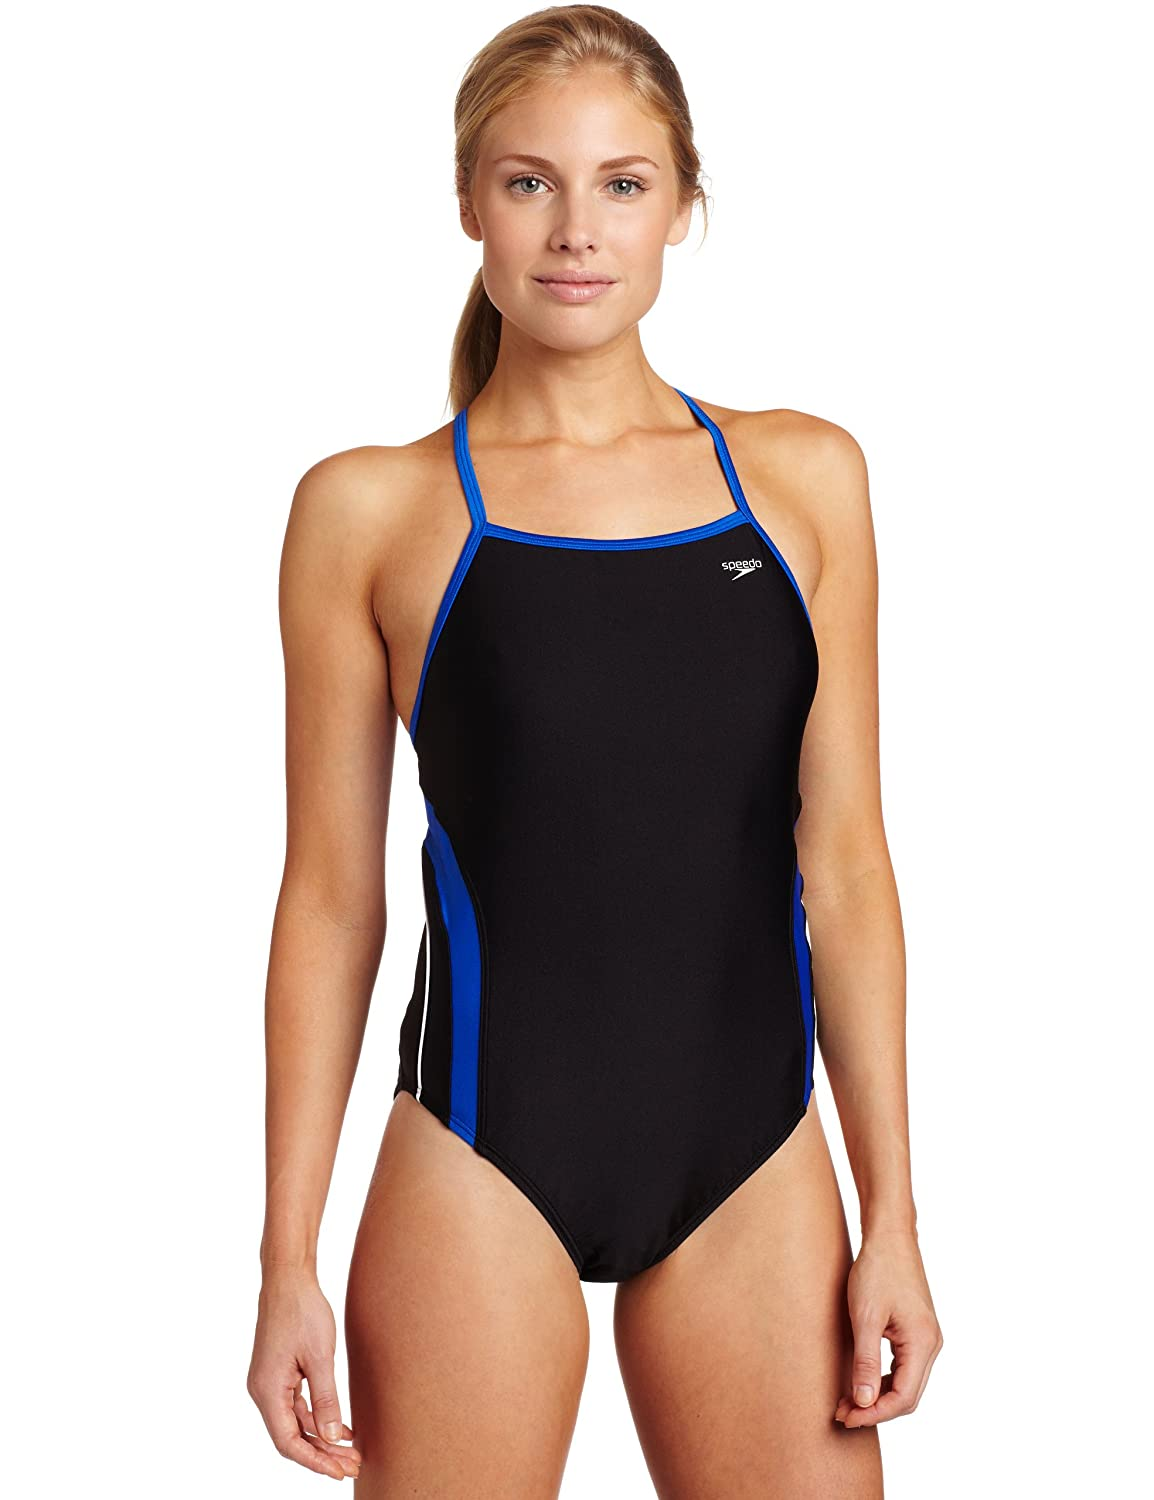 6f93edacfd Speedo equals better fit, performance, quality, and innovation. The rapid  splice energy back is a great team or everyday core suit with athletic  solid color ...